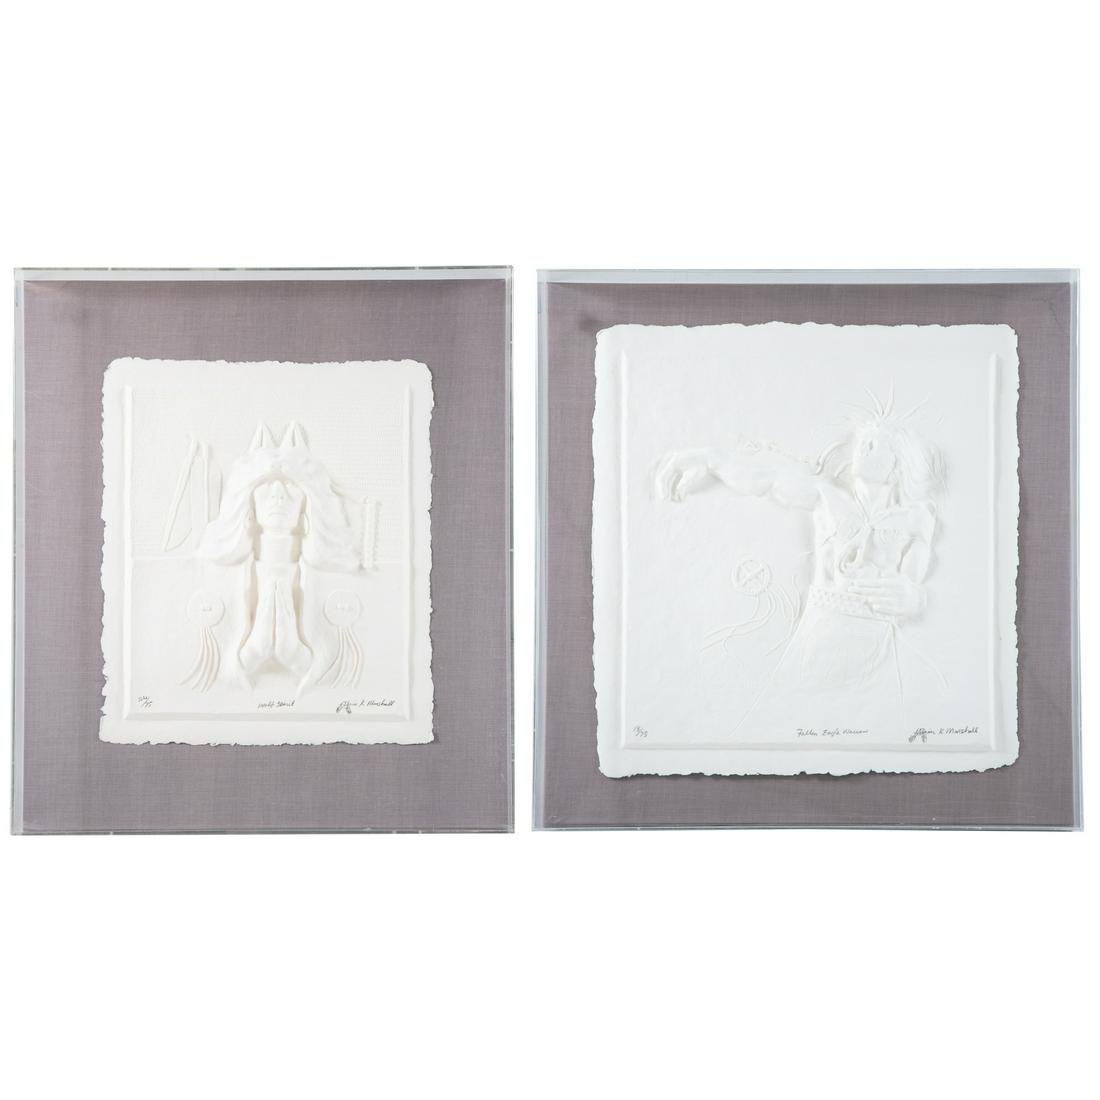 Alvin K. Marshall. Two Cast Paper Reliefs